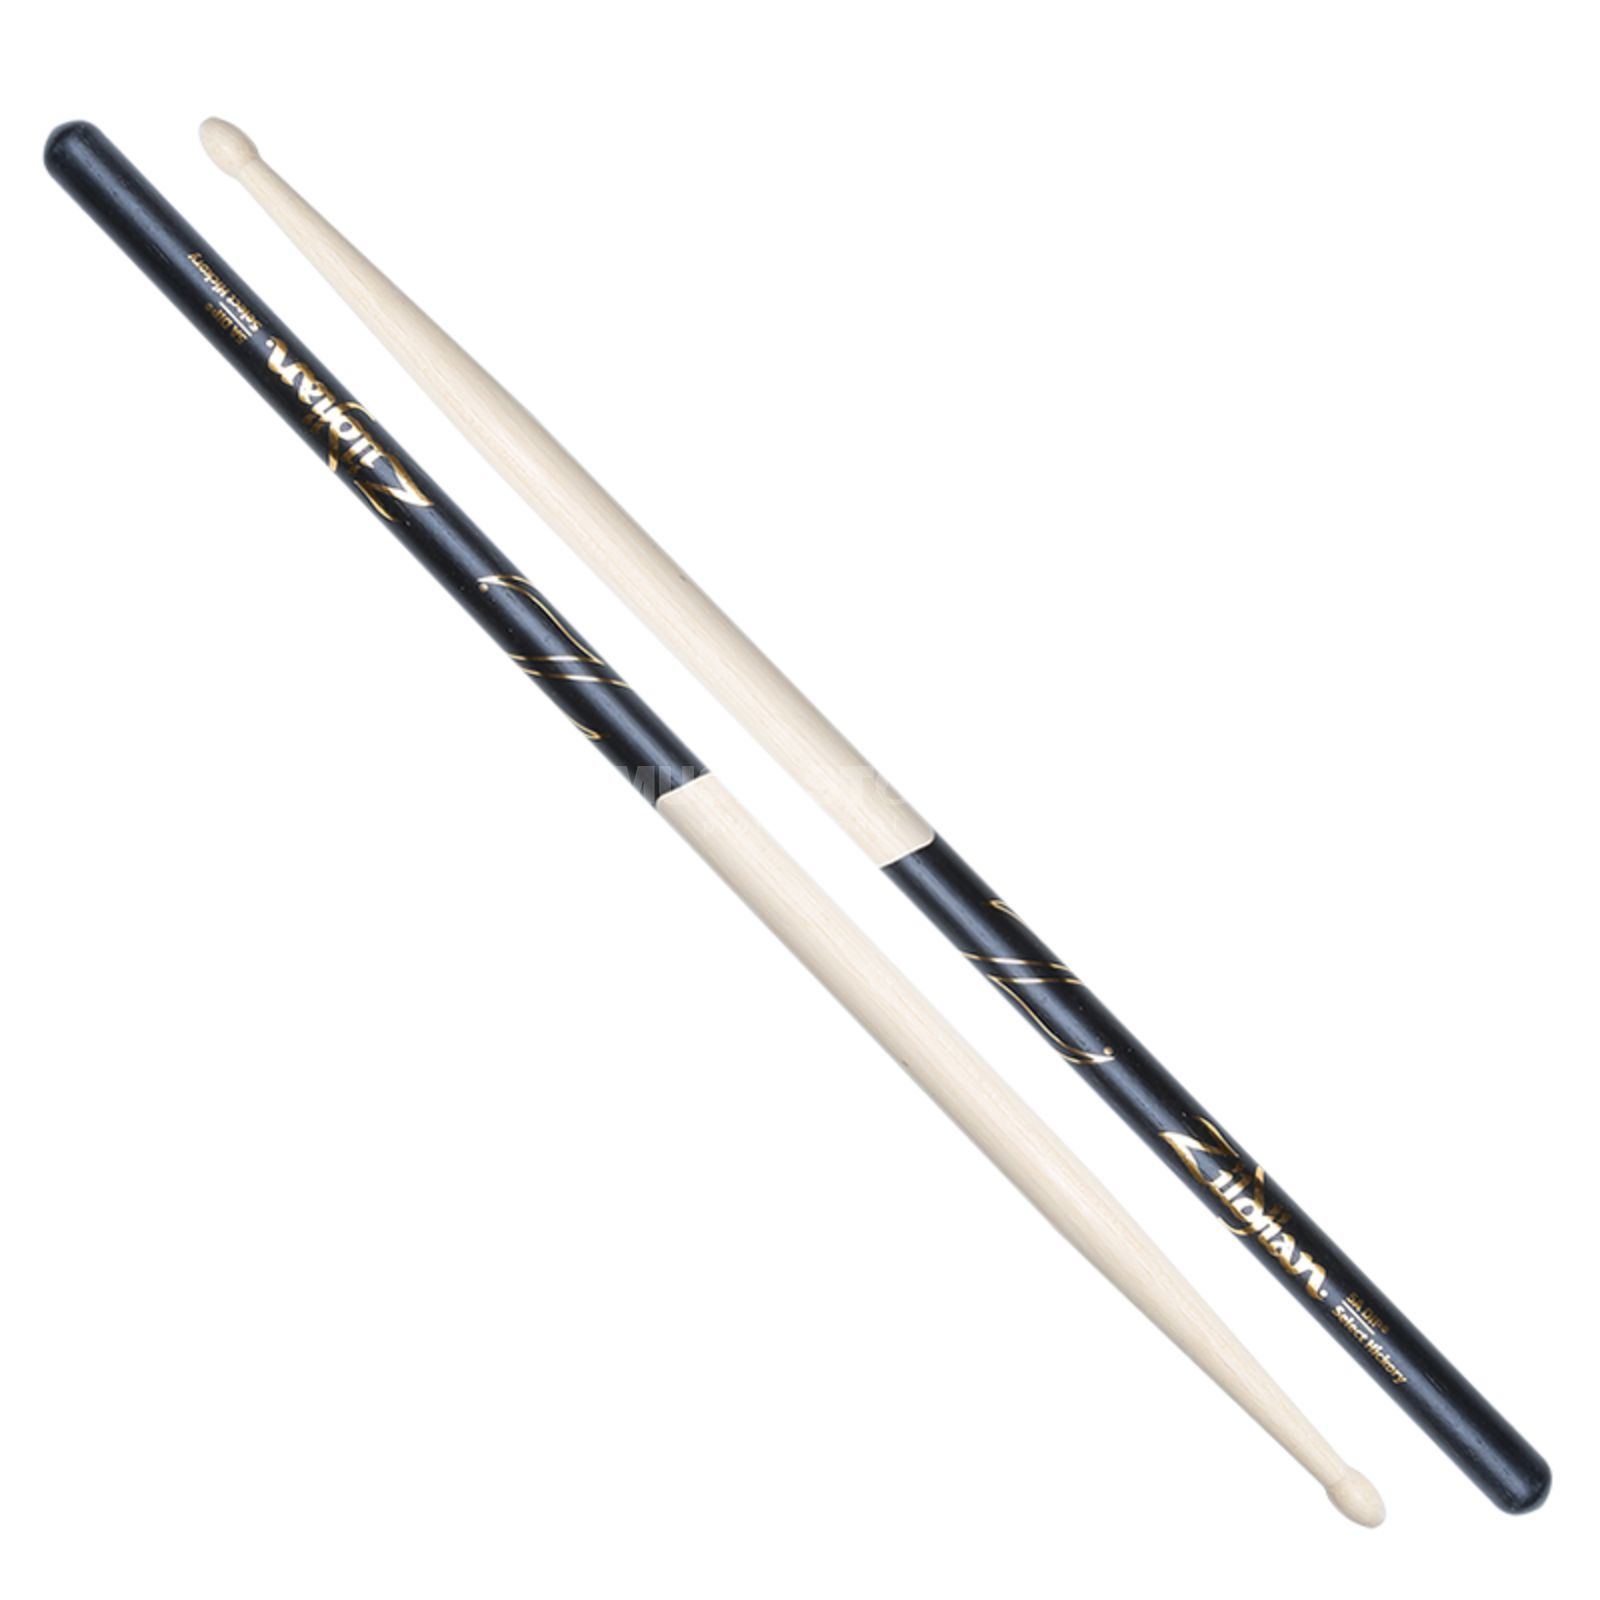 Zildjian 5A Hickory Sticks, Black-DIP Natural Finish, Wood Tip Produktbillede